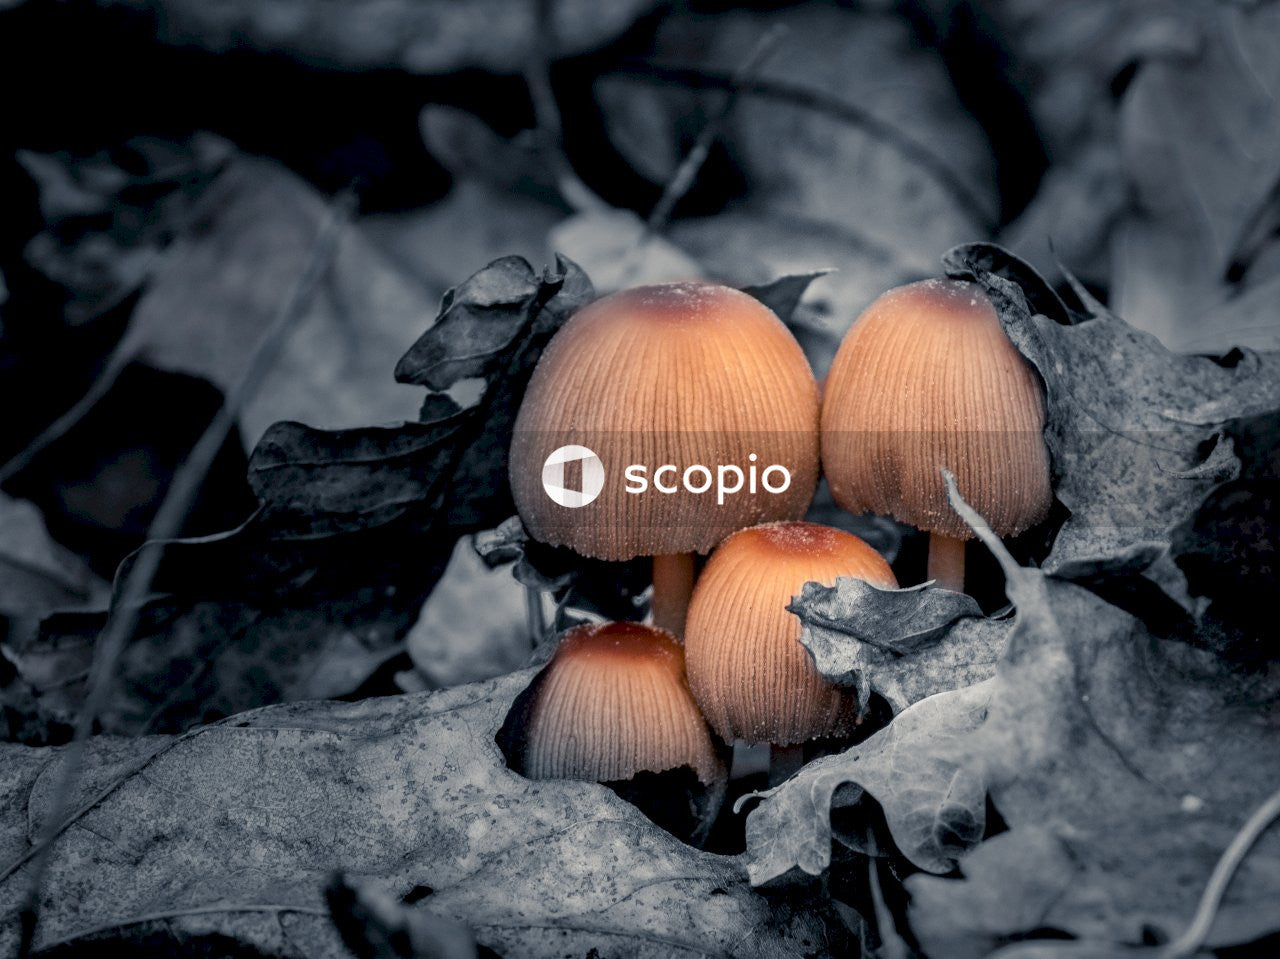 Orange mushrooms on black dried leaves